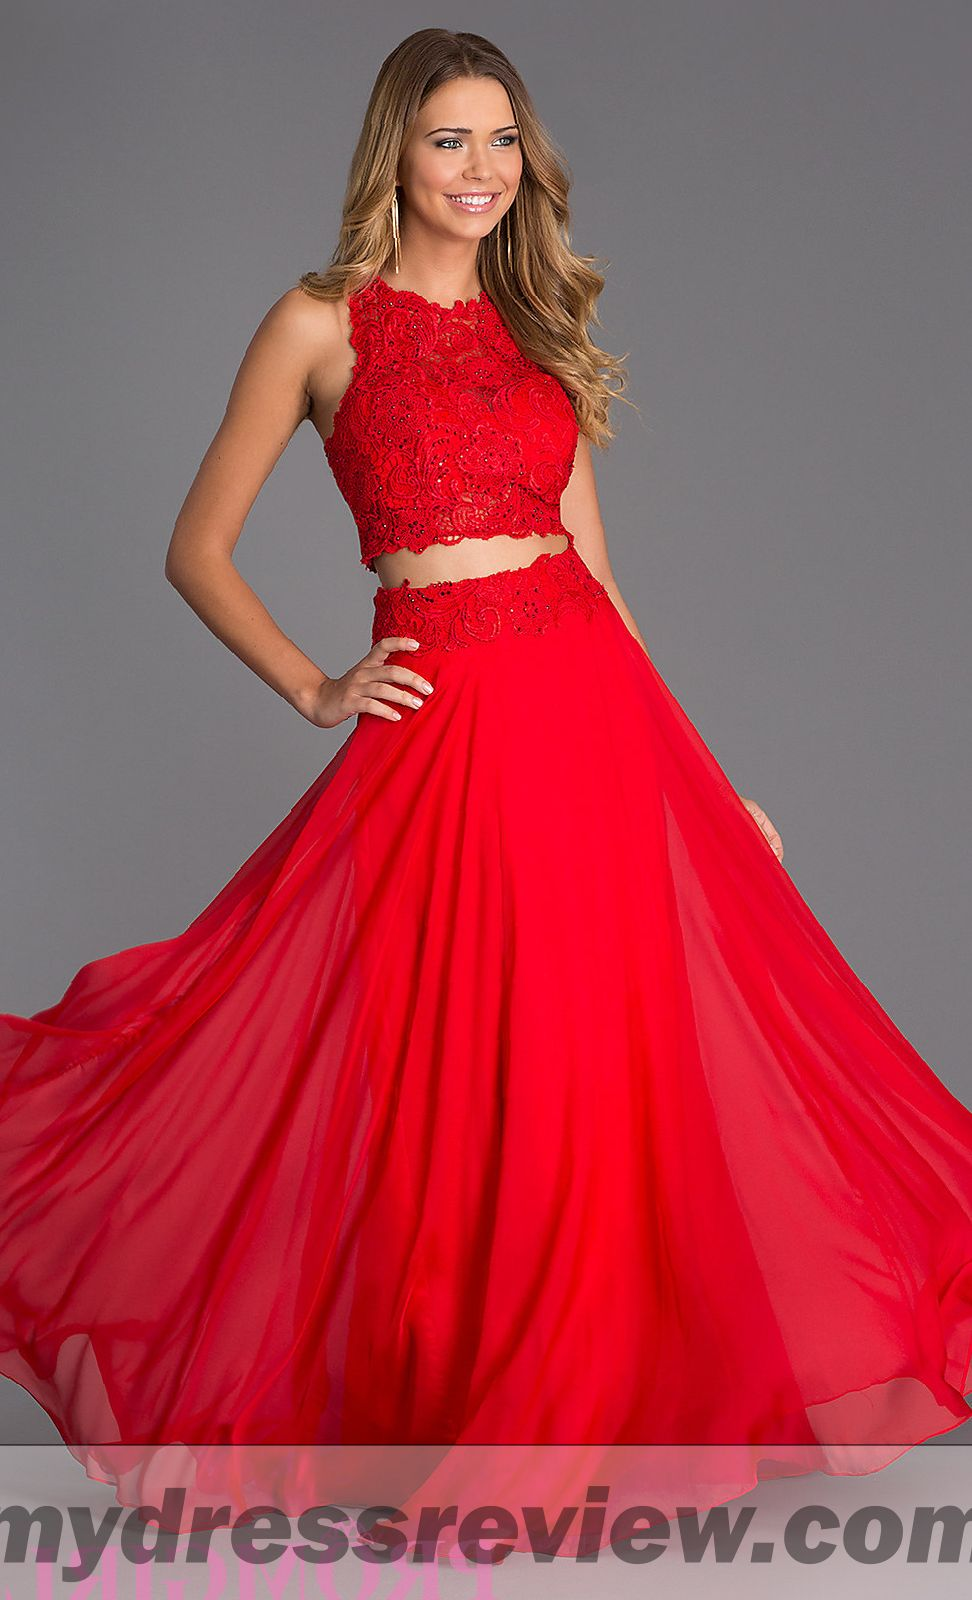 Red And Black Two Piece Prom Dress And Review 2017 ...